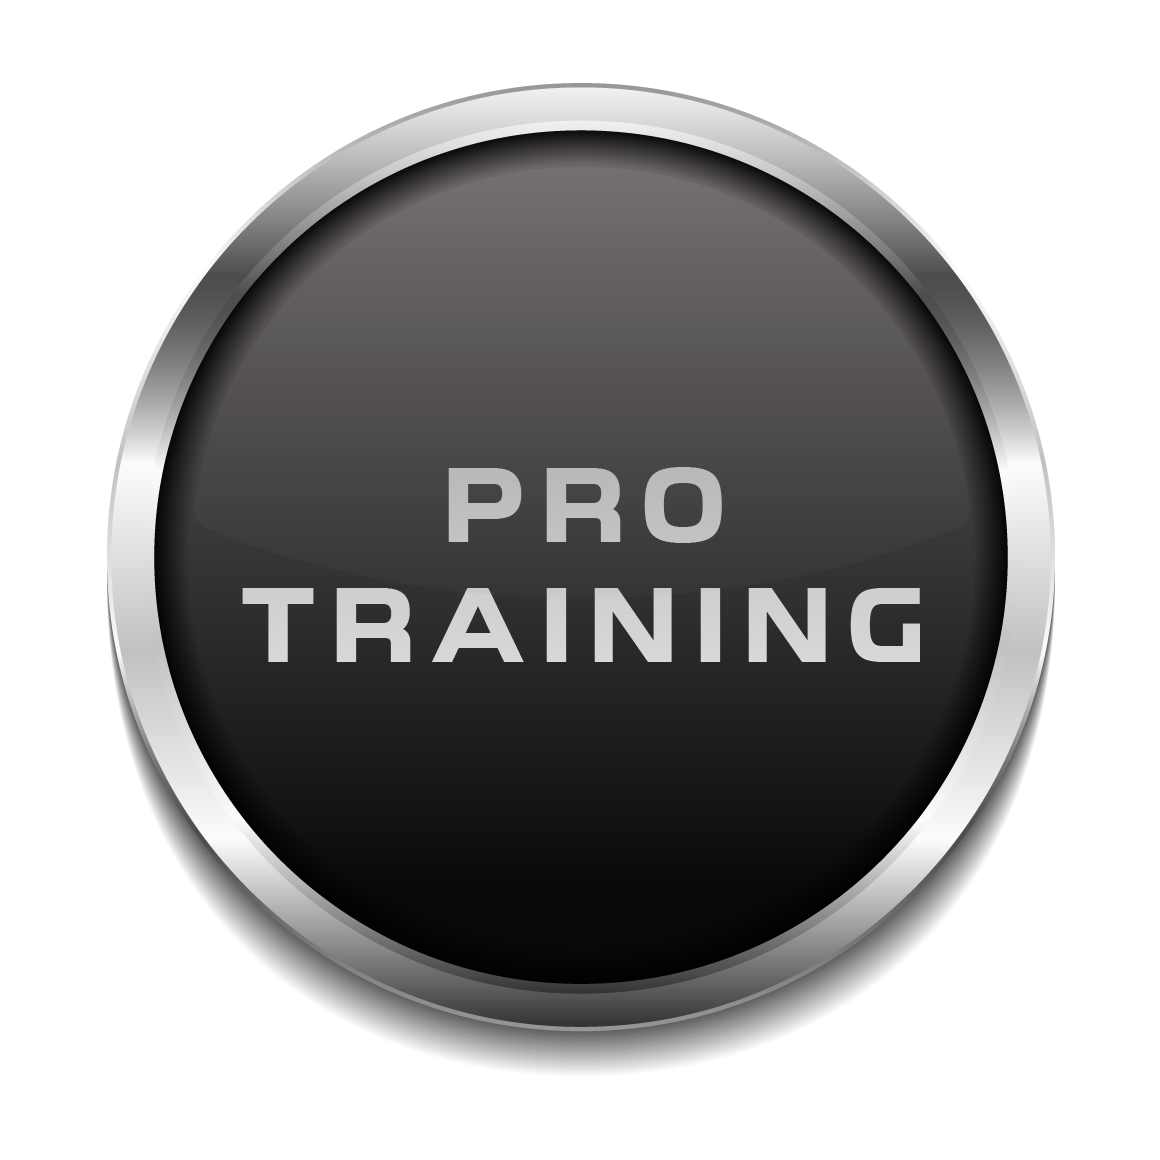 PROTRAINING.png